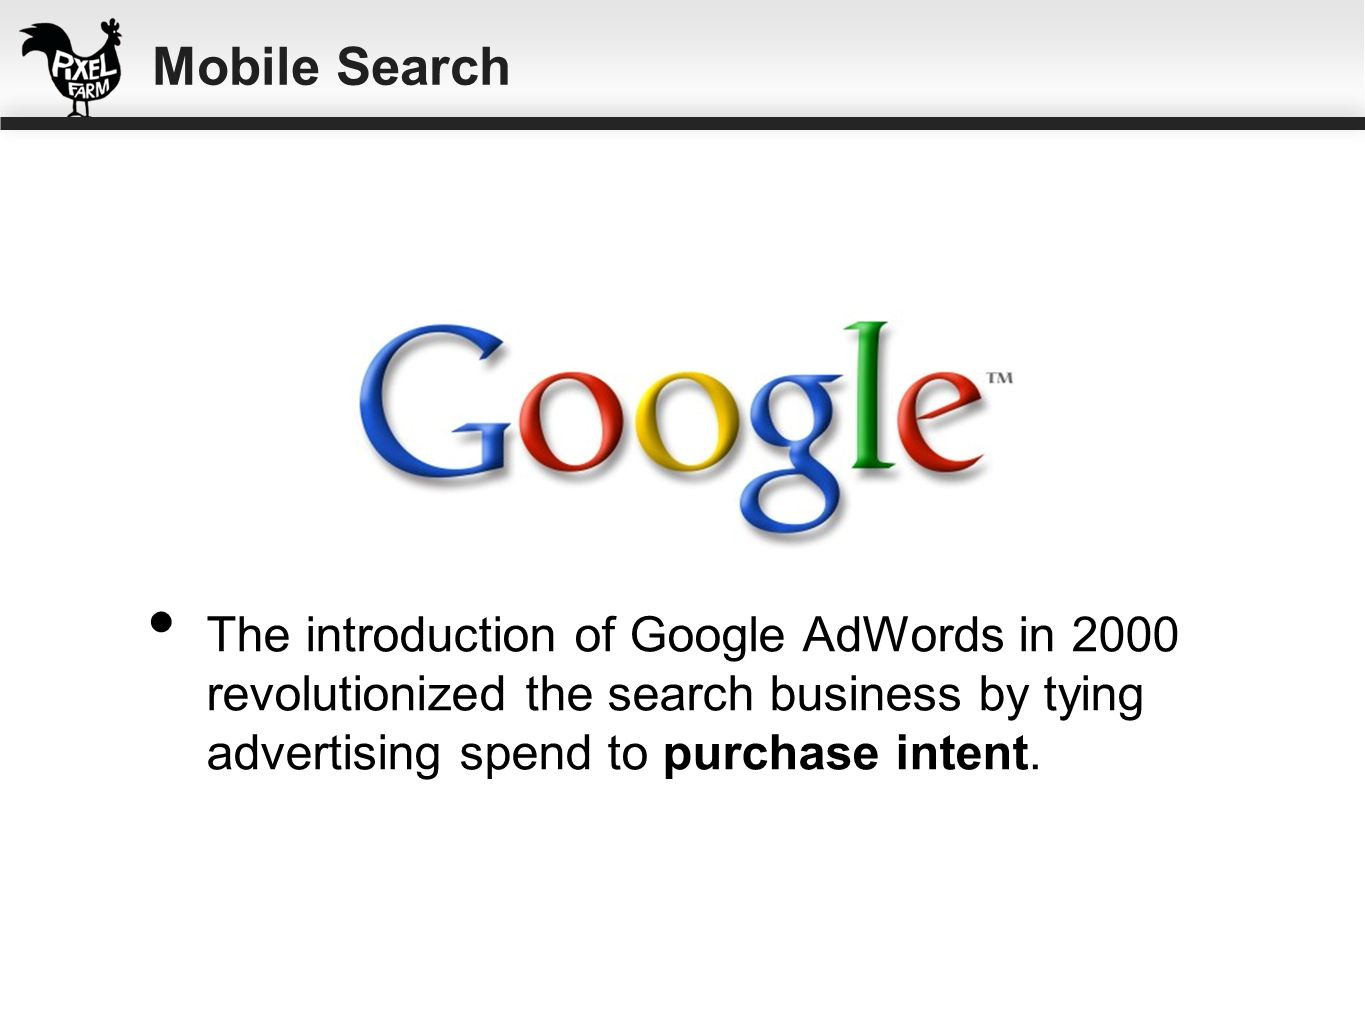 Mobile Search The introduction of Google AdWords in 2000 revolutionized the search business by tying advertising spend to purchase intent.